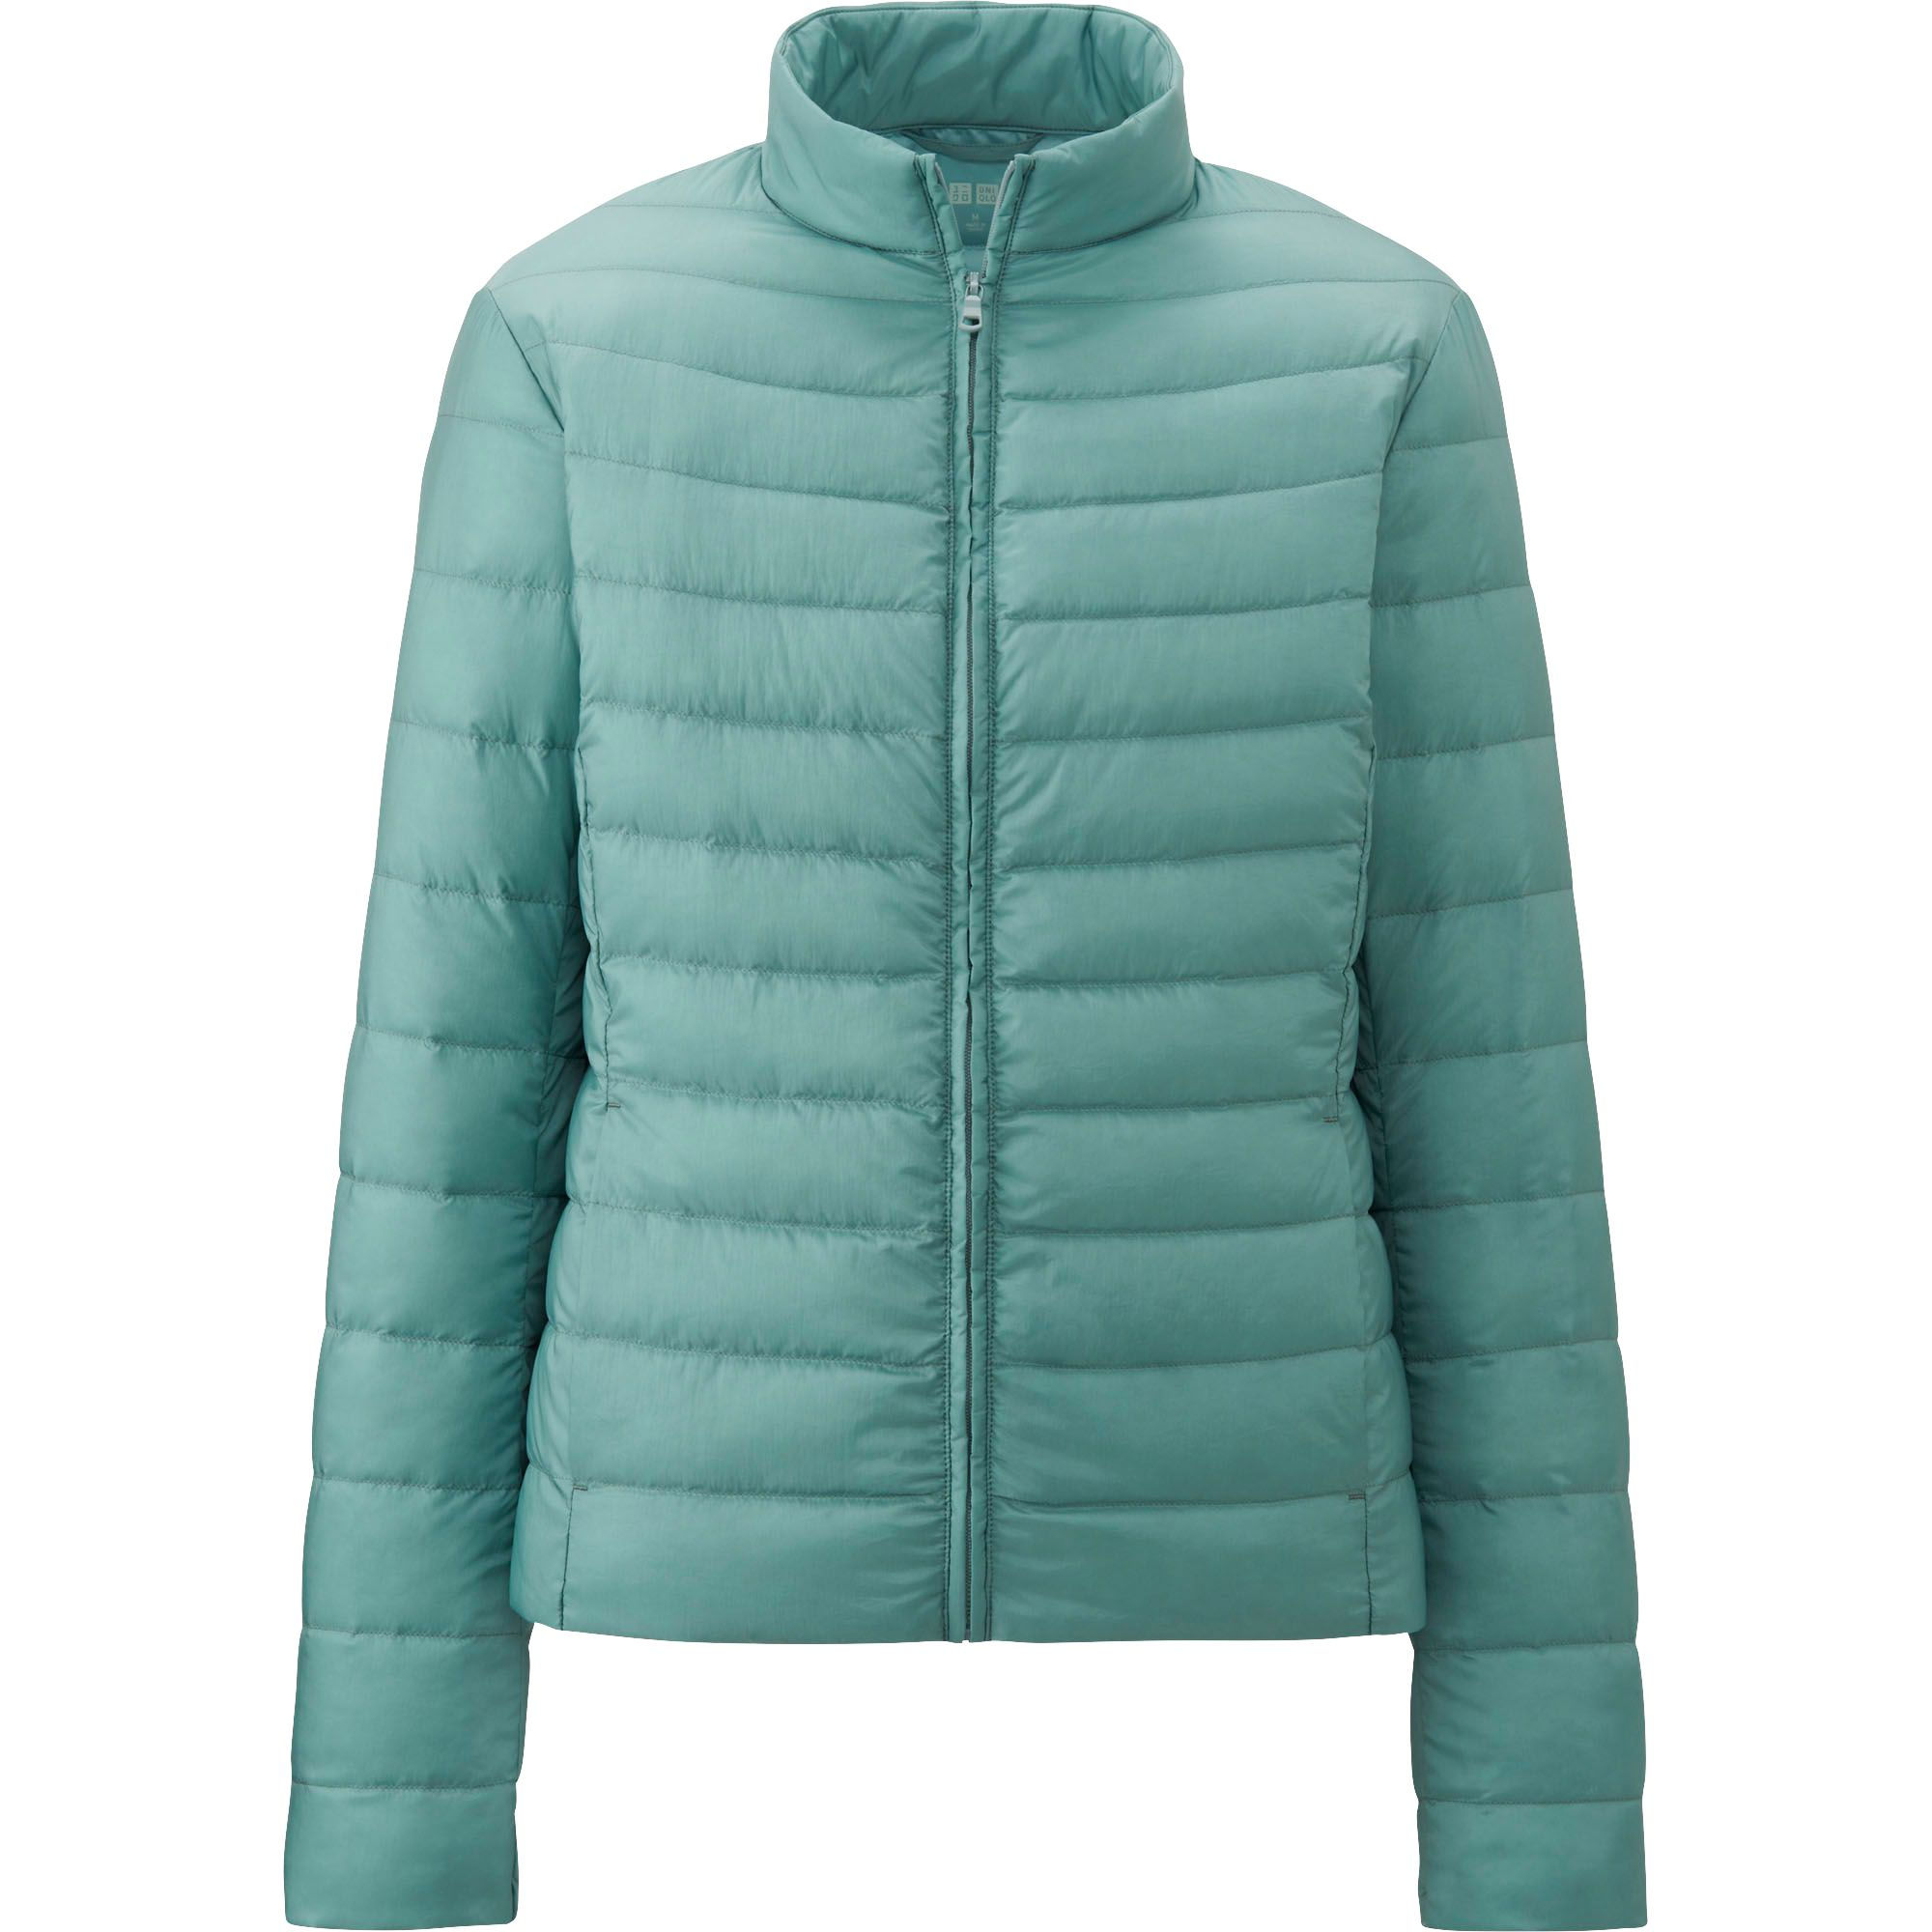 uniqlo women ultra light down compact jacket in green lyst. Black Bedroom Furniture Sets. Home Design Ideas